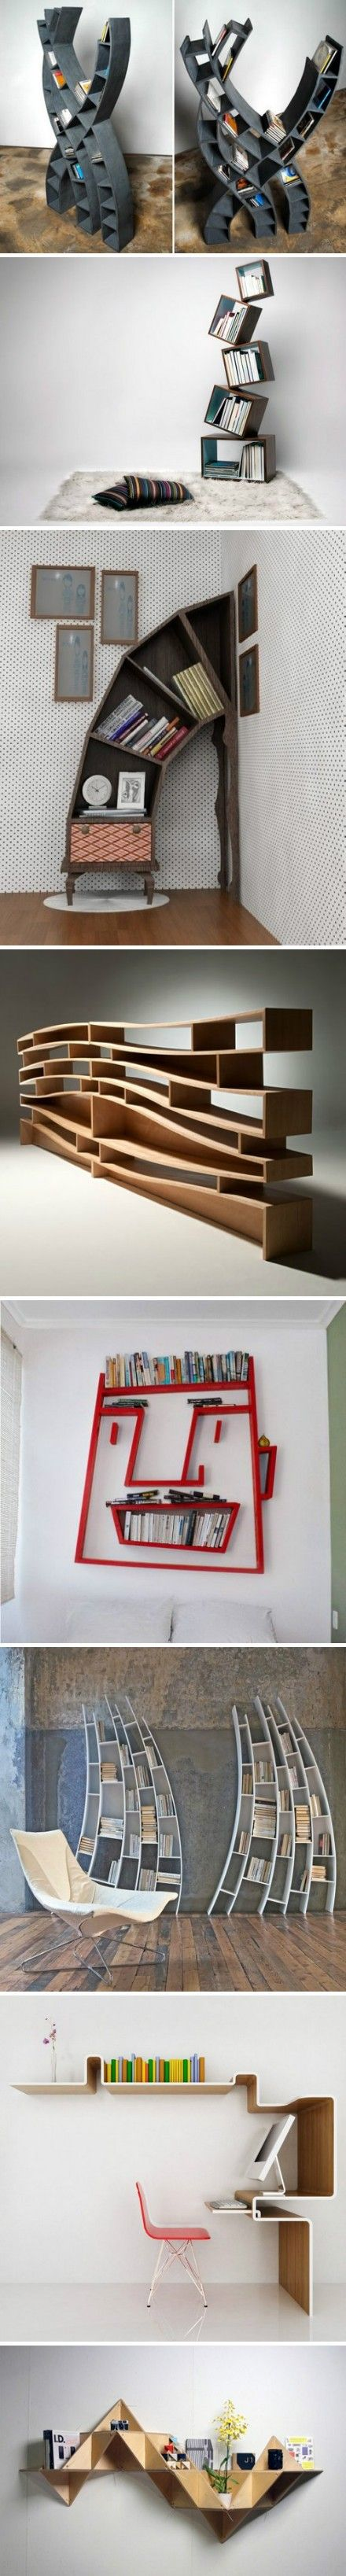 Unique DIY Book Shelves - These would look cool in the library! #bookshelves